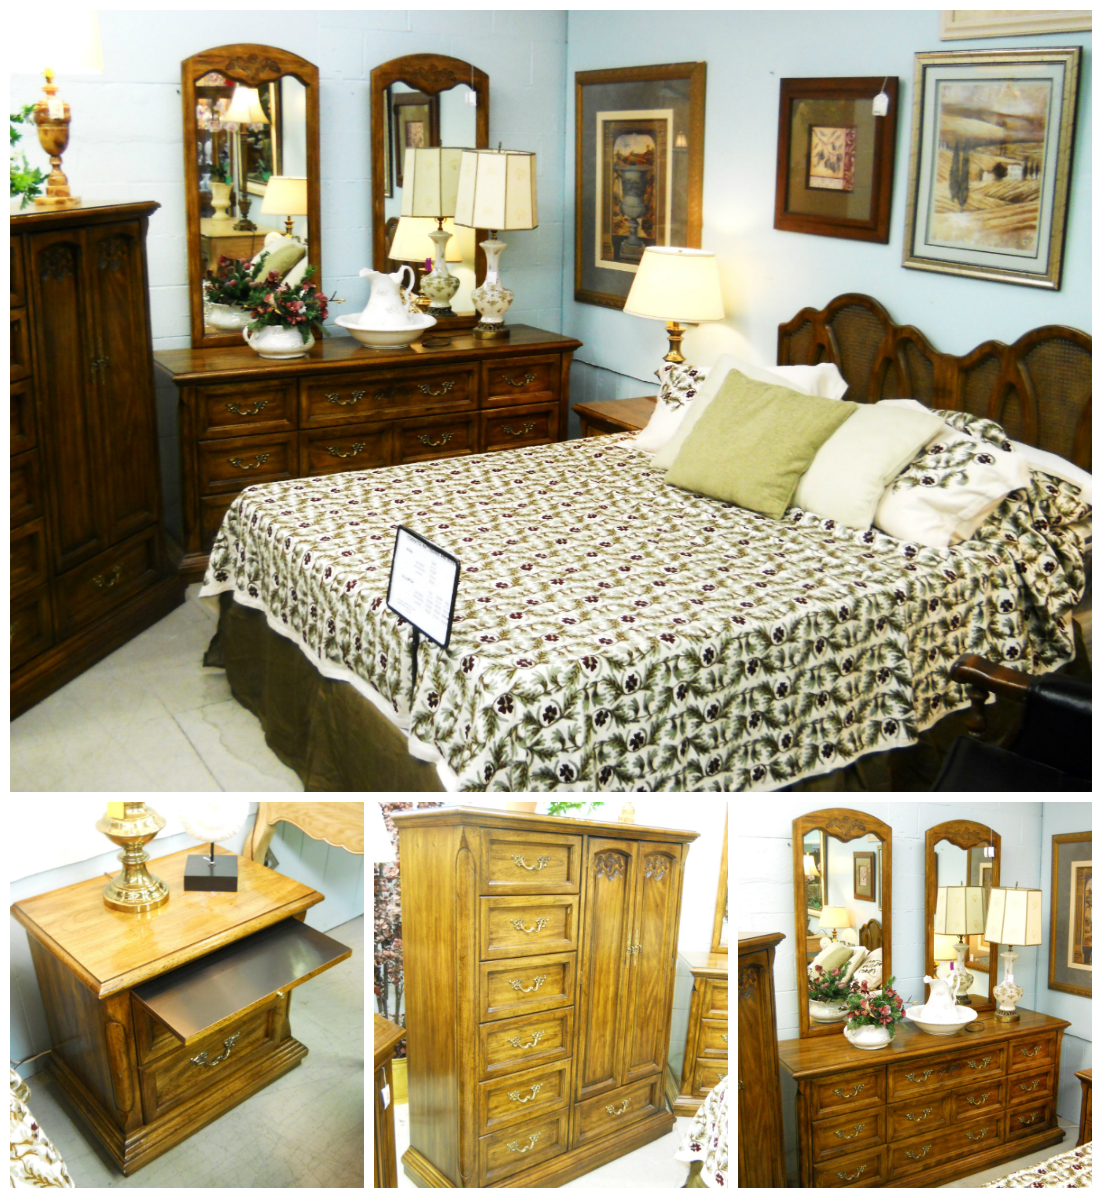 Used Furniture Gallery: 1-13672 American Of Martinsville Queen Bedroom Set